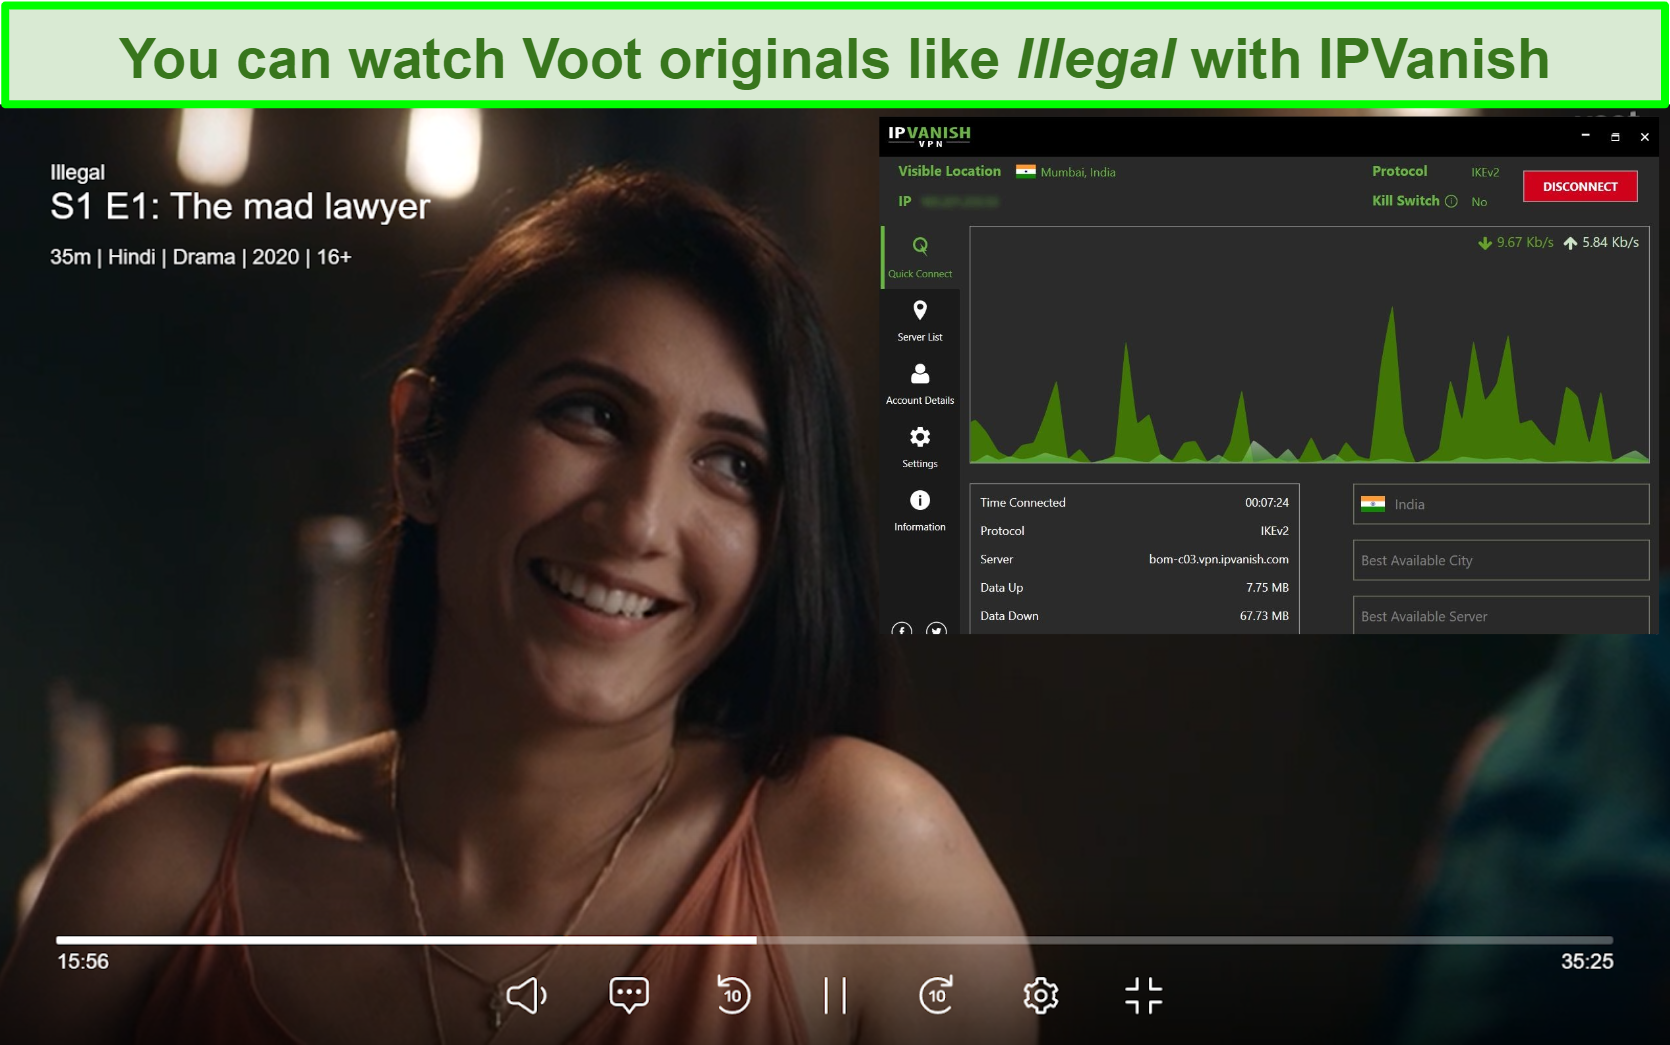 Screenshot of Illegal playing on Voot with IPVanish connected